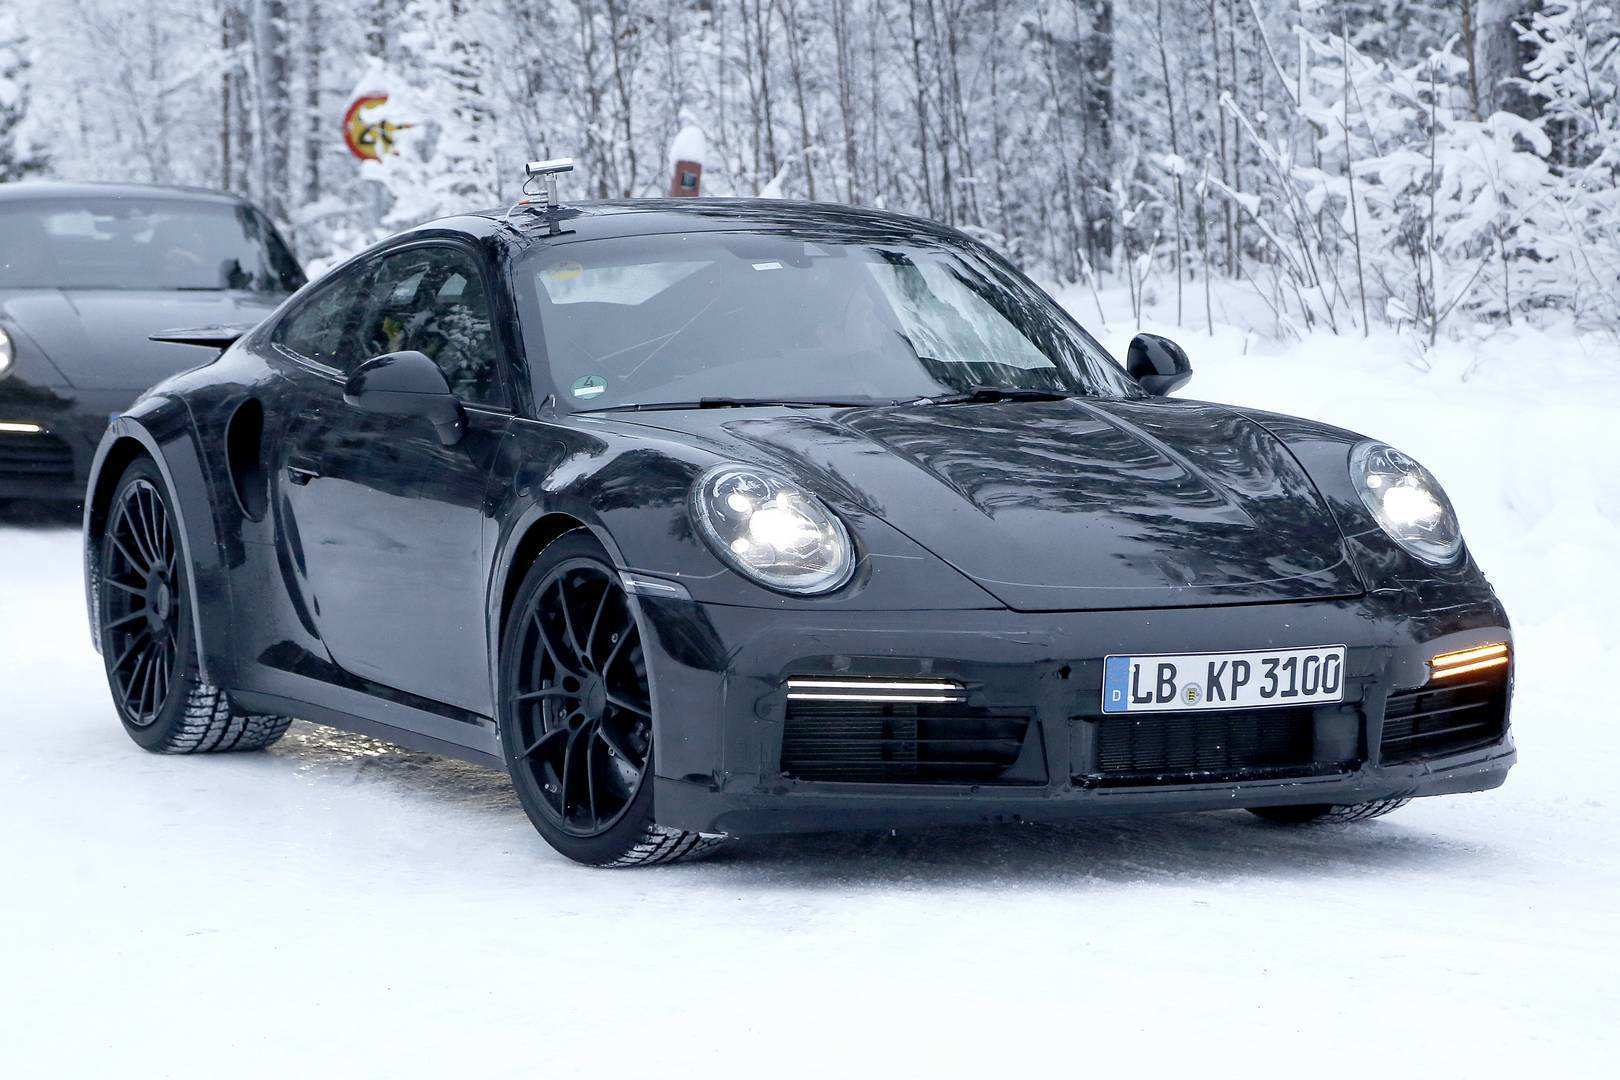 84 Concept of 2020 Porsche Turbo S Performance and New Engine by 2020 Porsche Turbo S